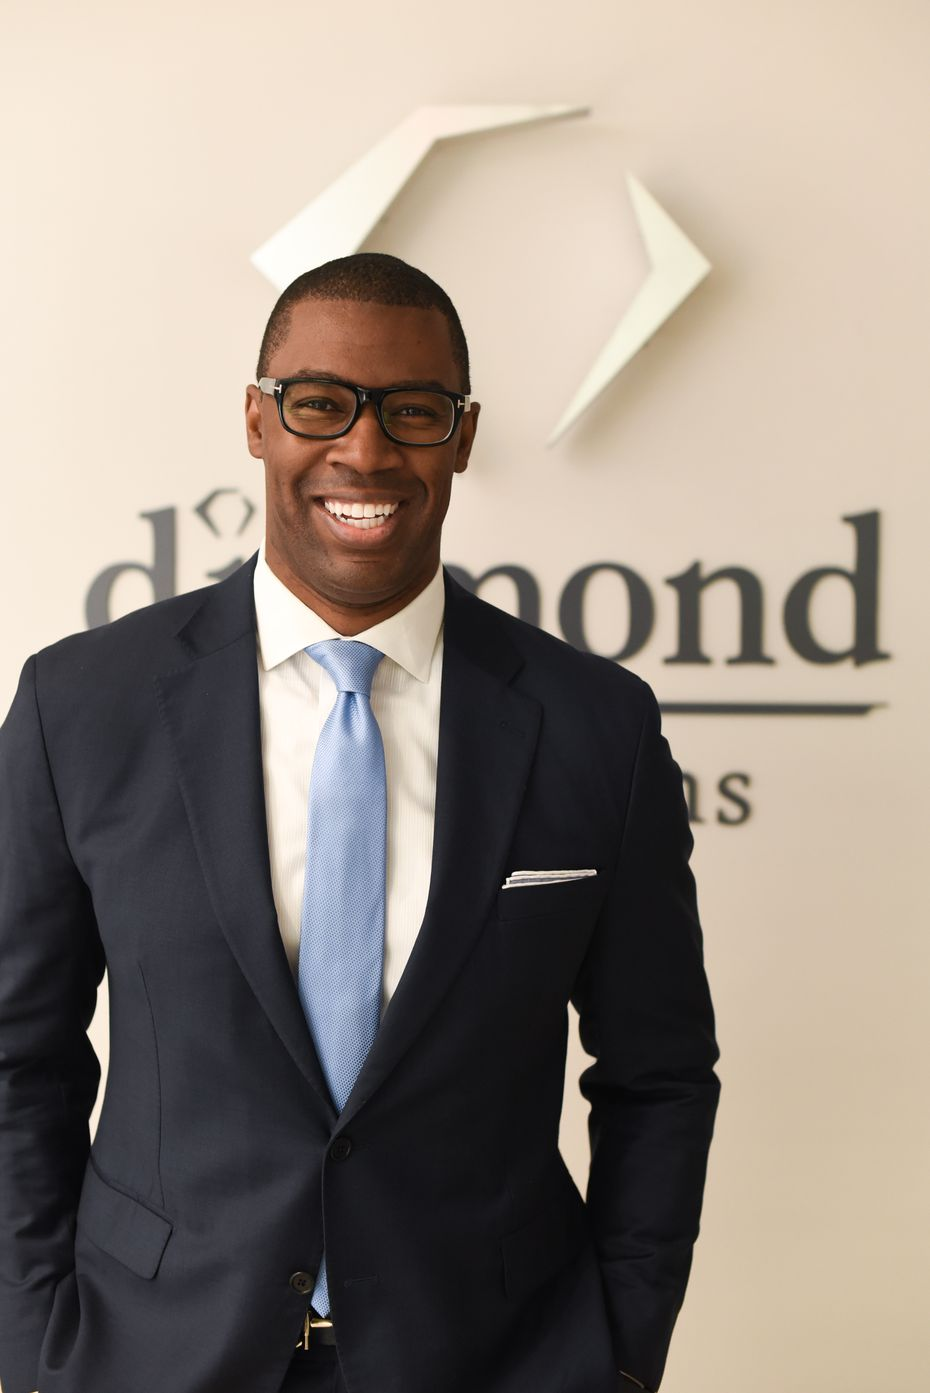 Dr. James Pinckney II is assisting in MLB teams testing protocols. He works with Diamond Physicians in Dallas.